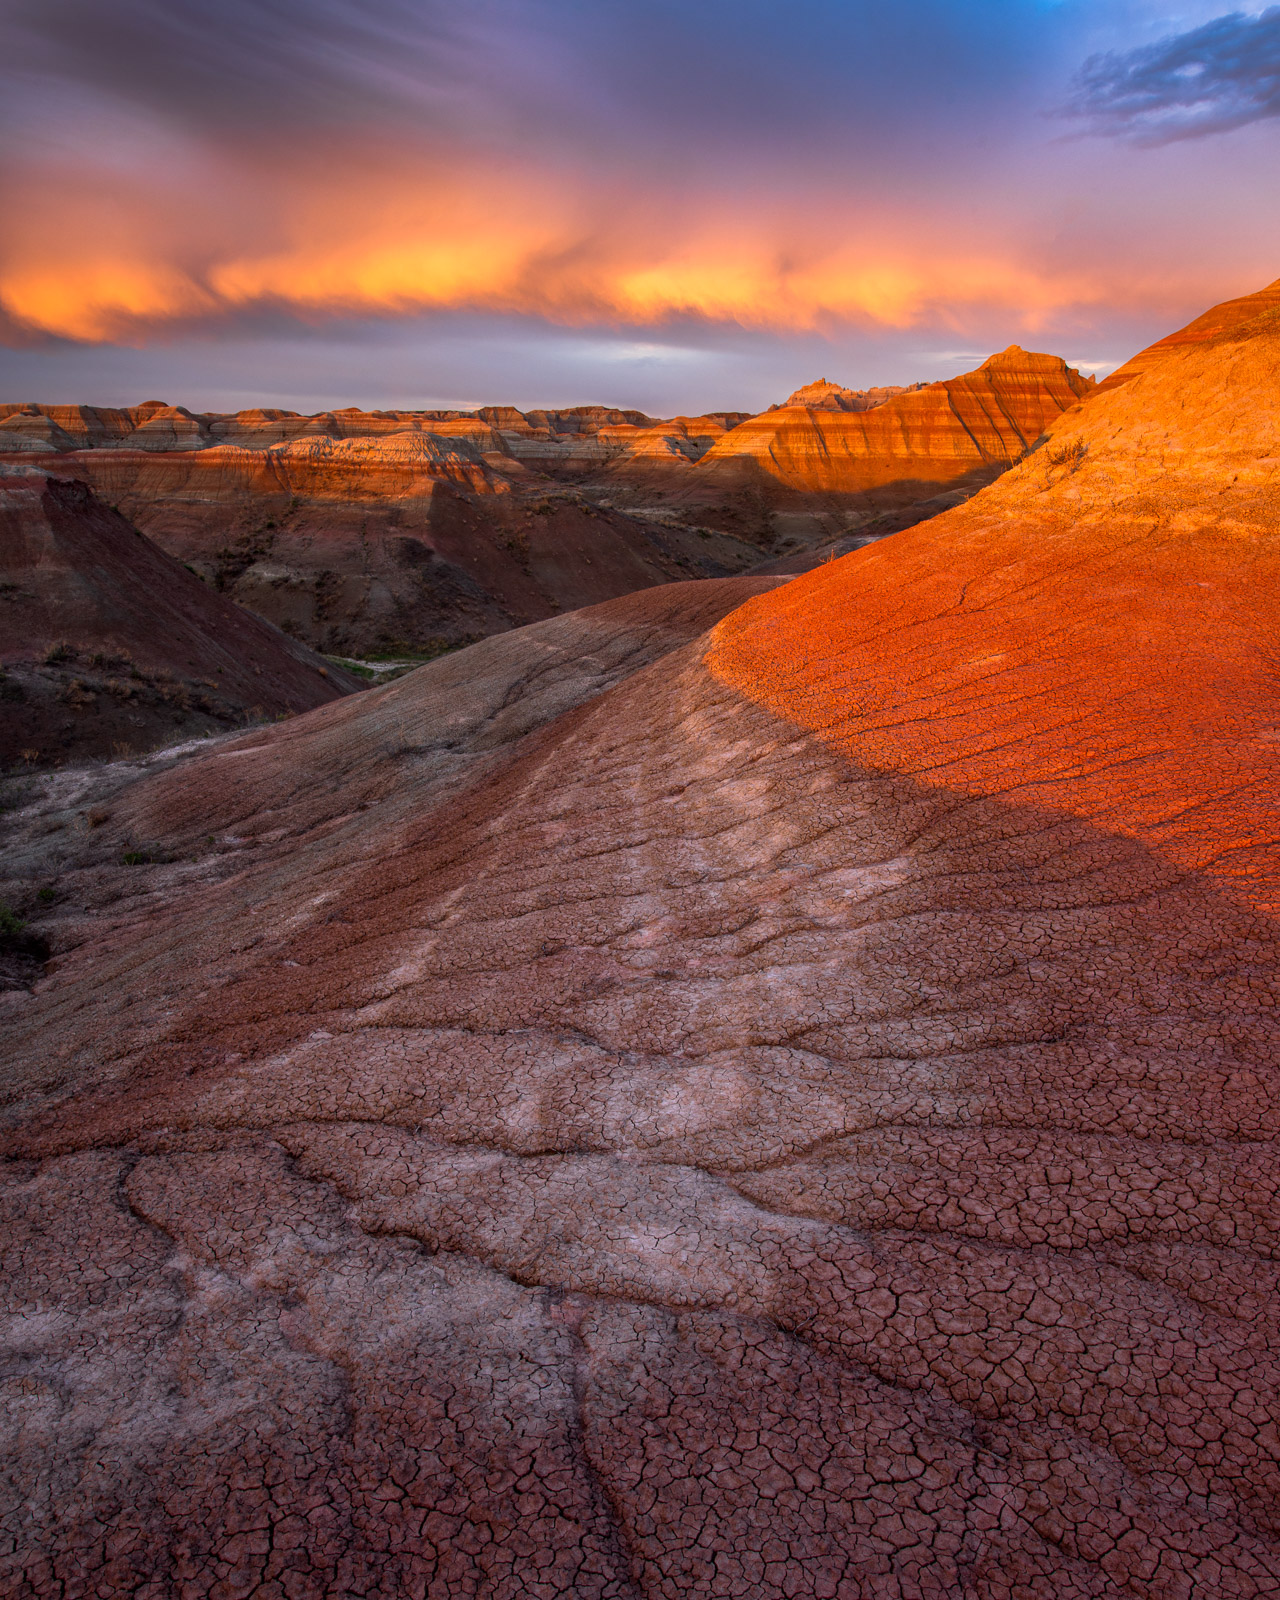 A spectacular display of storm light at sunset in a remote backcountry location deep in the heart of Badlands National Park.